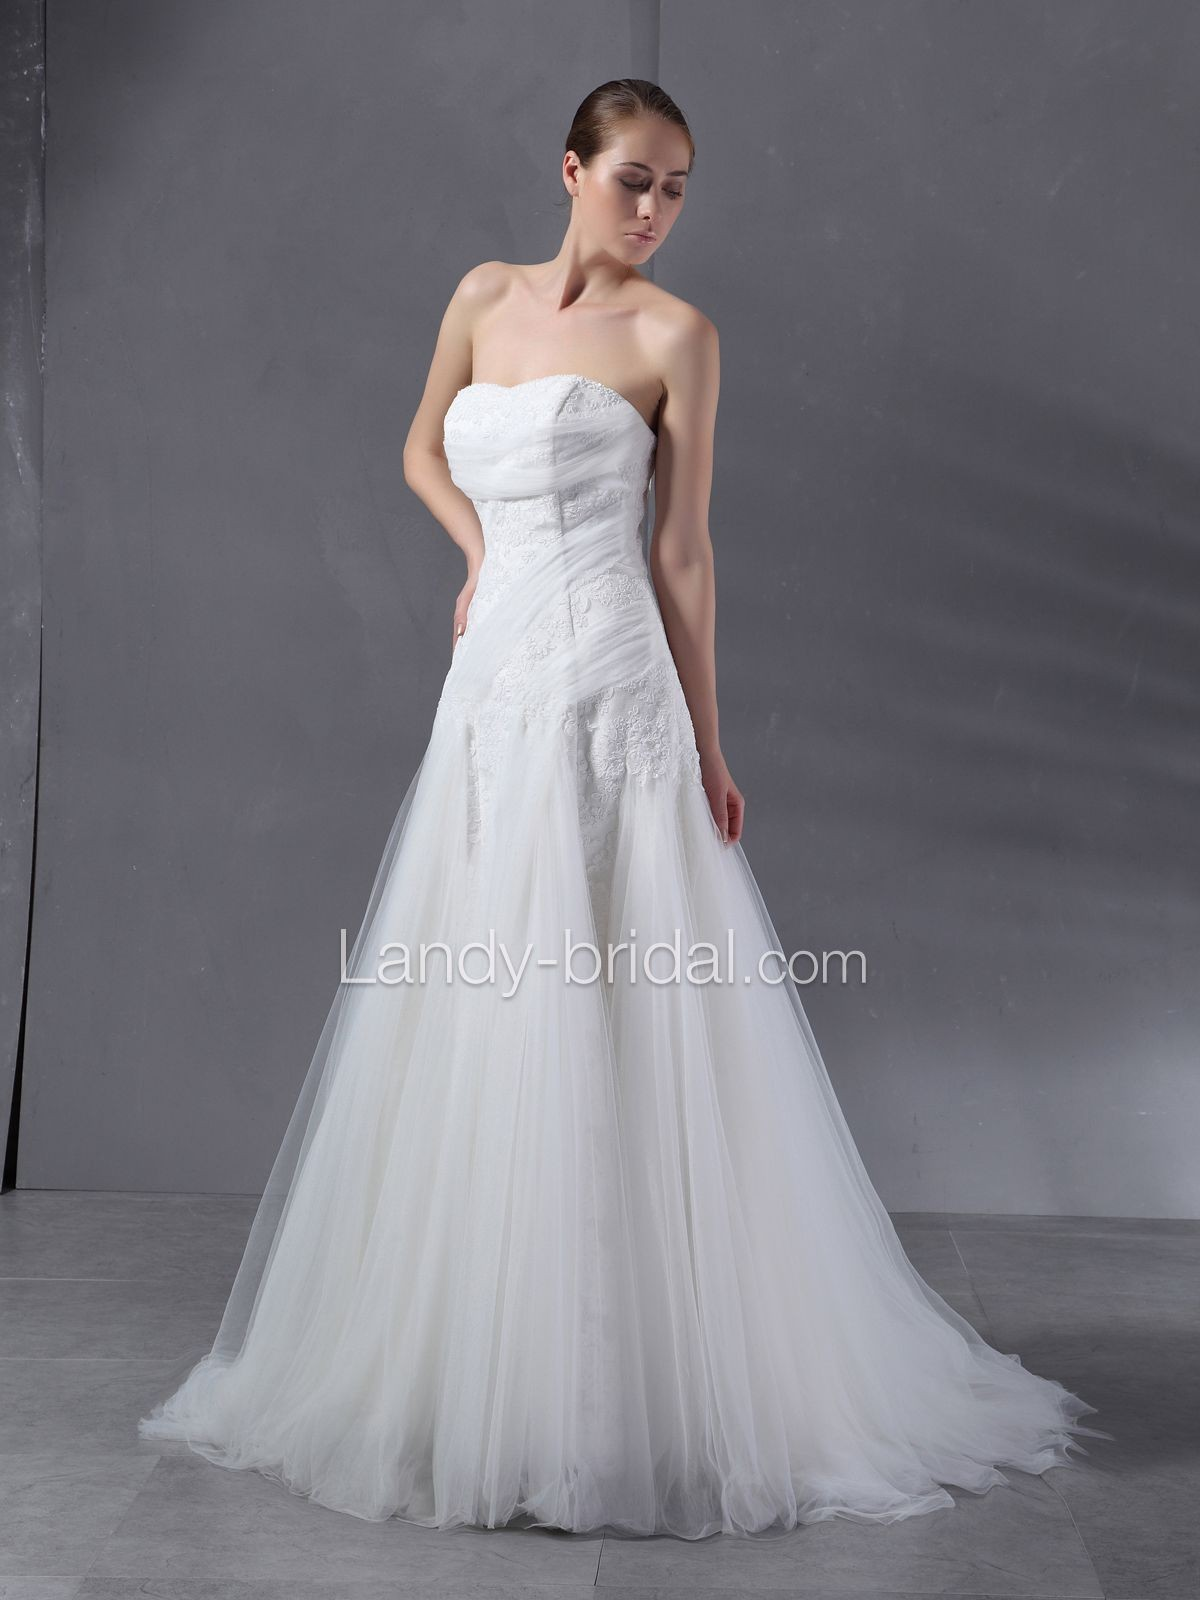 Wedding dresses for big busted women wedding dress for Wedding dresses for big busted women